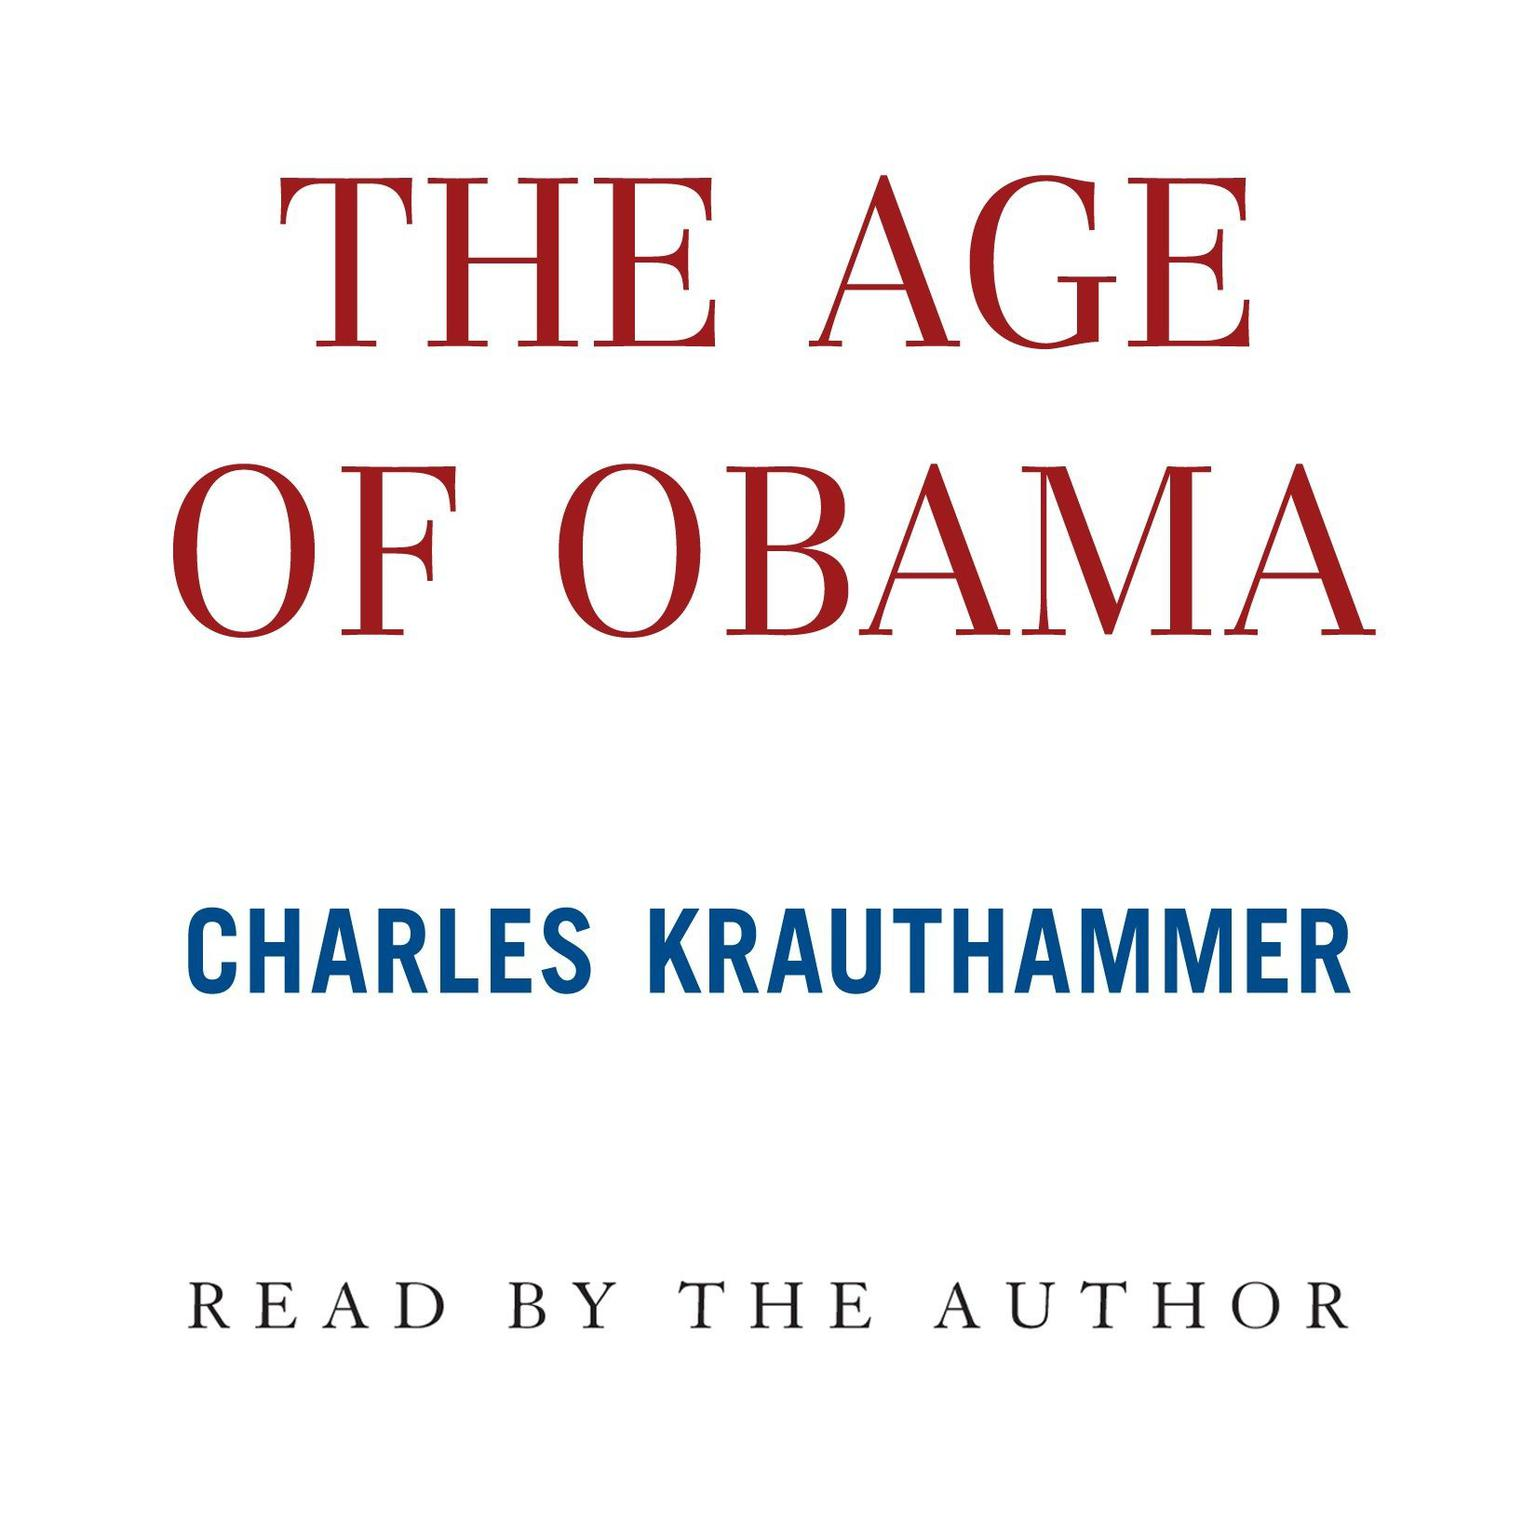 charles krauthammer essays Charles krauthammer slams trump's take on first-person essays, features, interviews and q&as about united kingdom united states south africa charles krauthammer slams trump's take on charlottesville as 'a moral disgrace' 19 of fox news' most unforgettable moments 19 of.